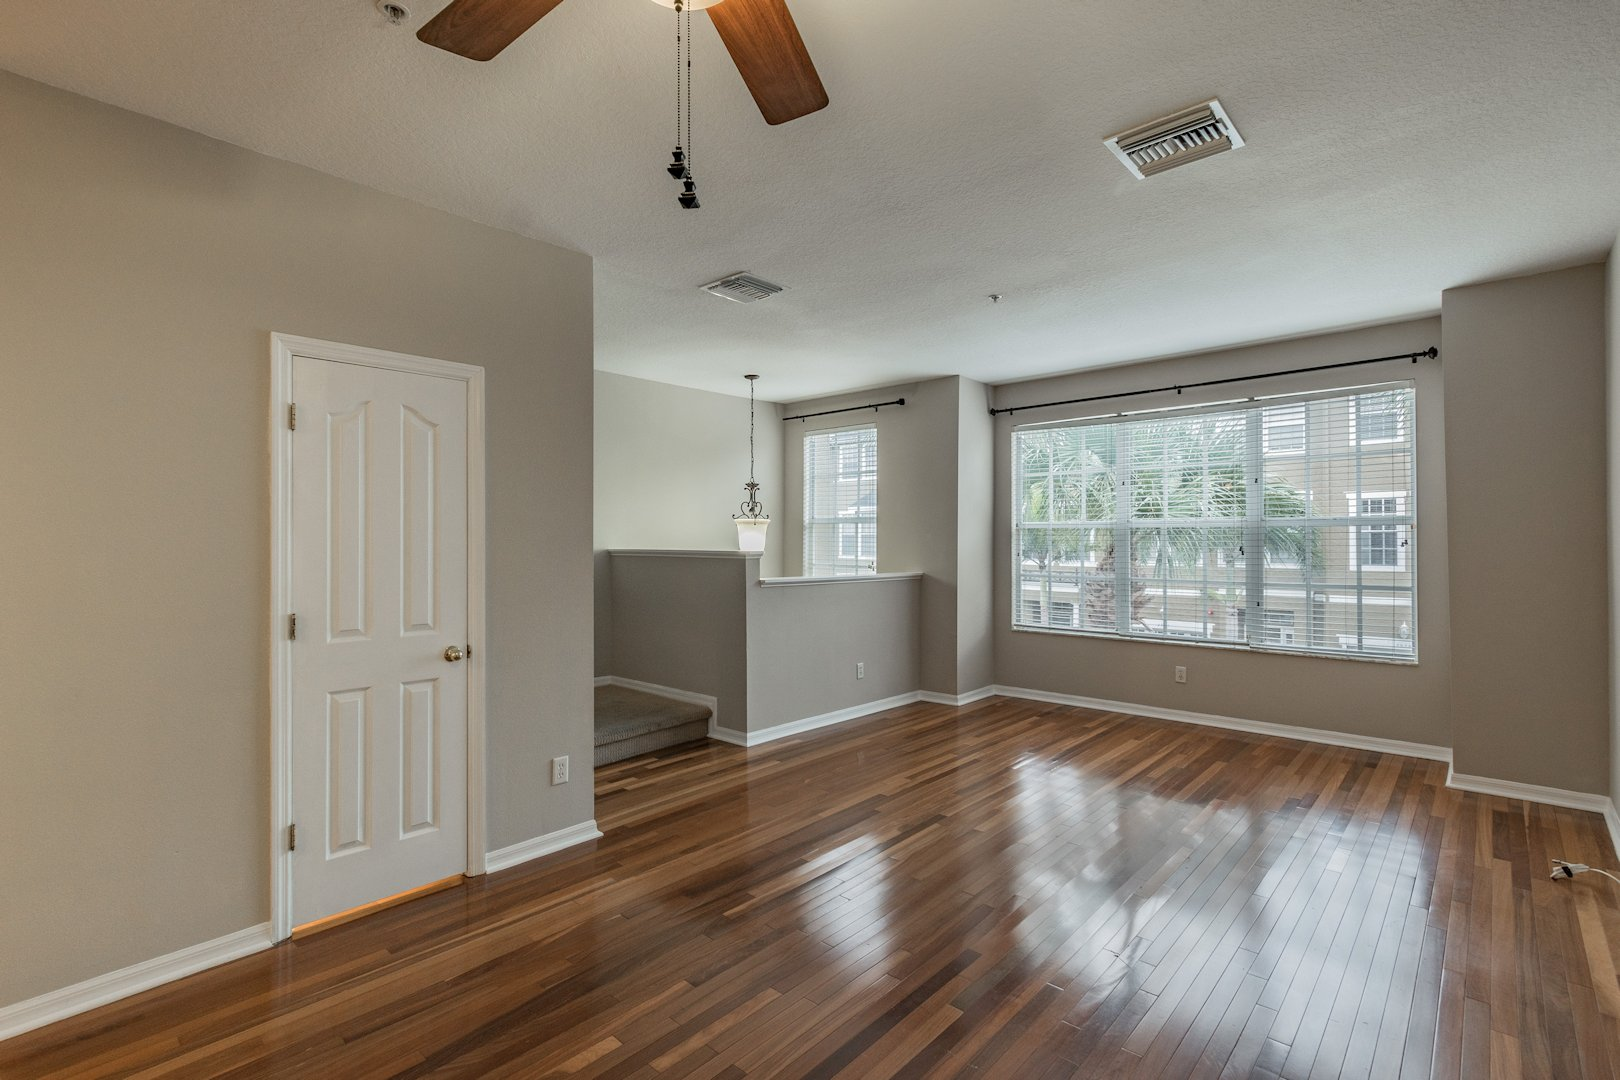 2929 bayshore Pointe Dr. Tampa Fl, Bayshore Pointe Townhomes (33)